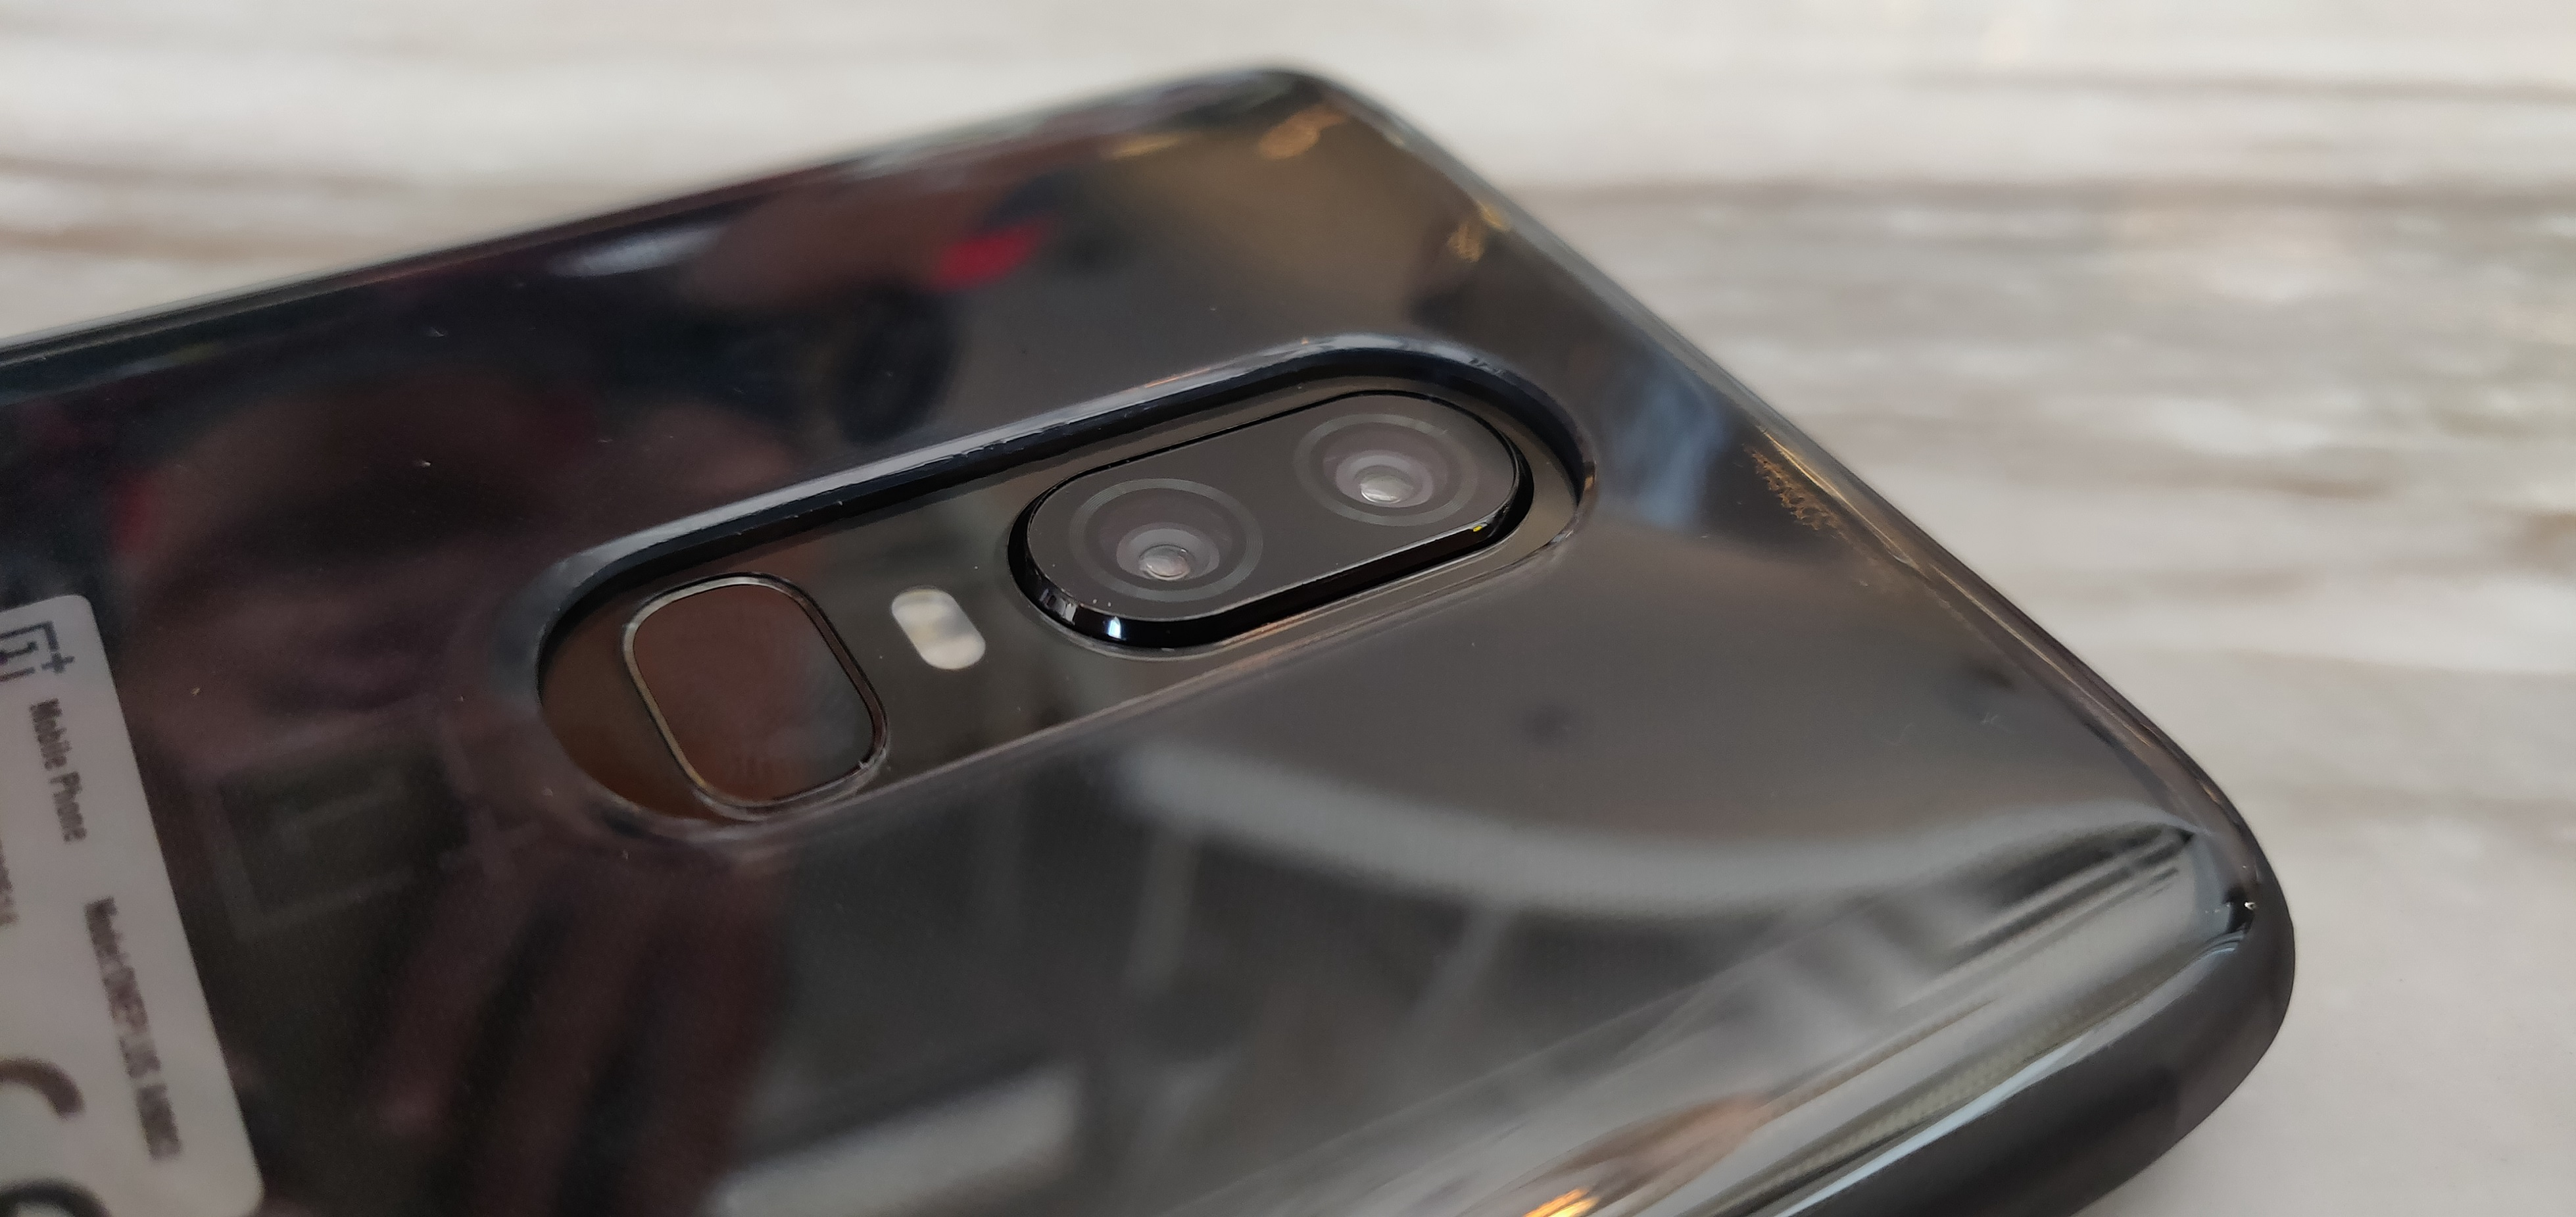 Oneplus 6 | The Neo Dimension